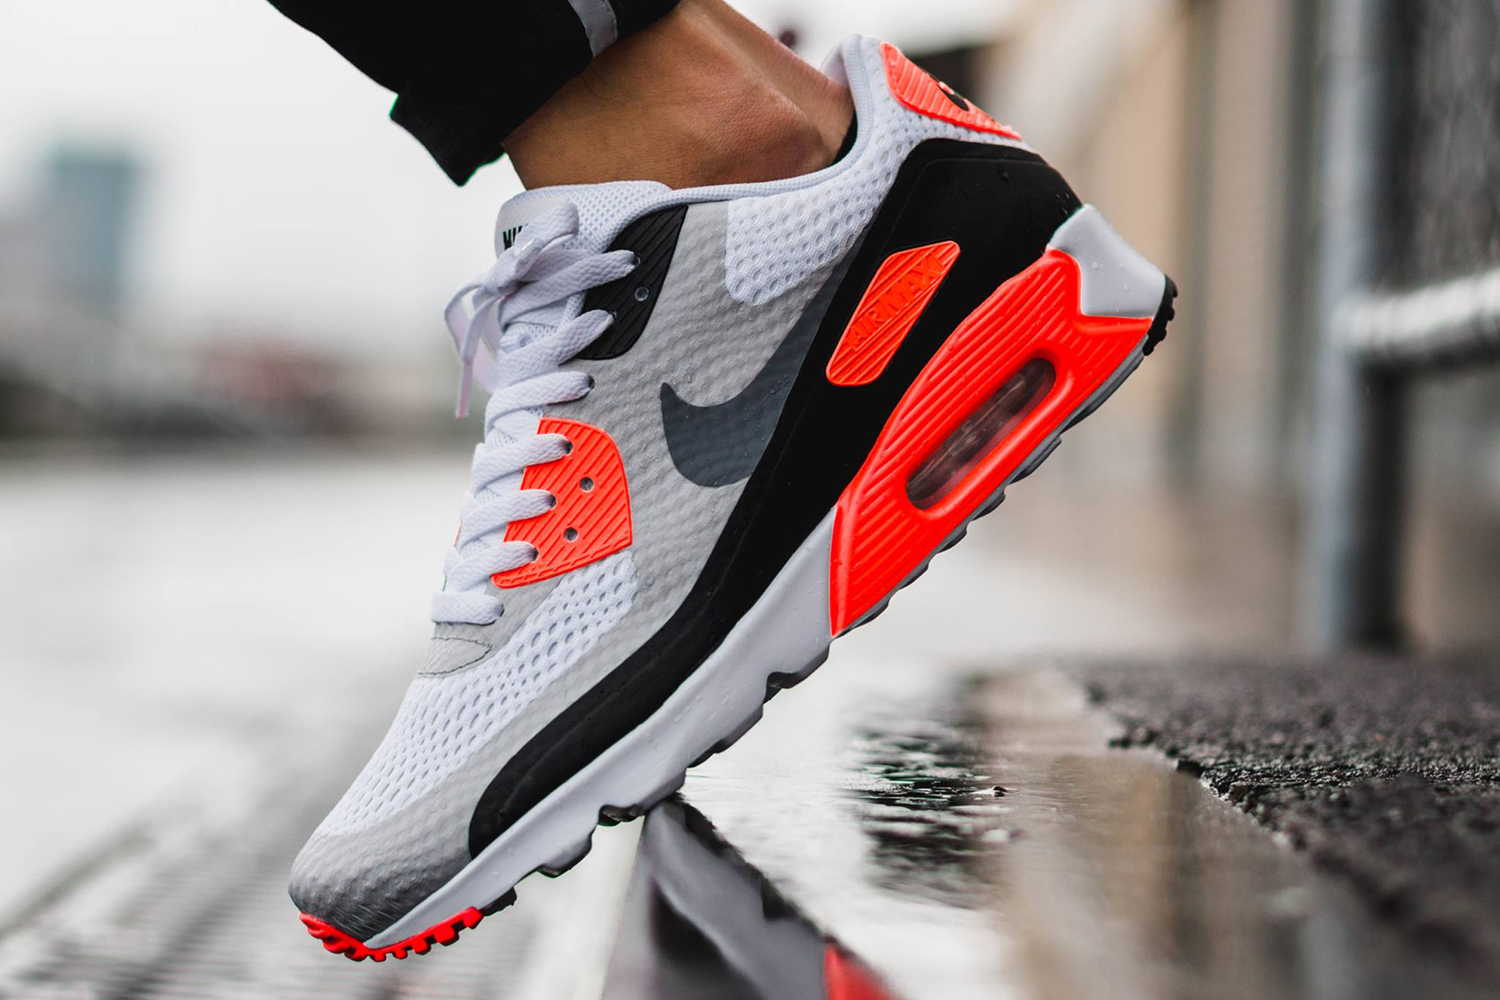 Nike Air Max 90 Ultra Essential shoes red black white